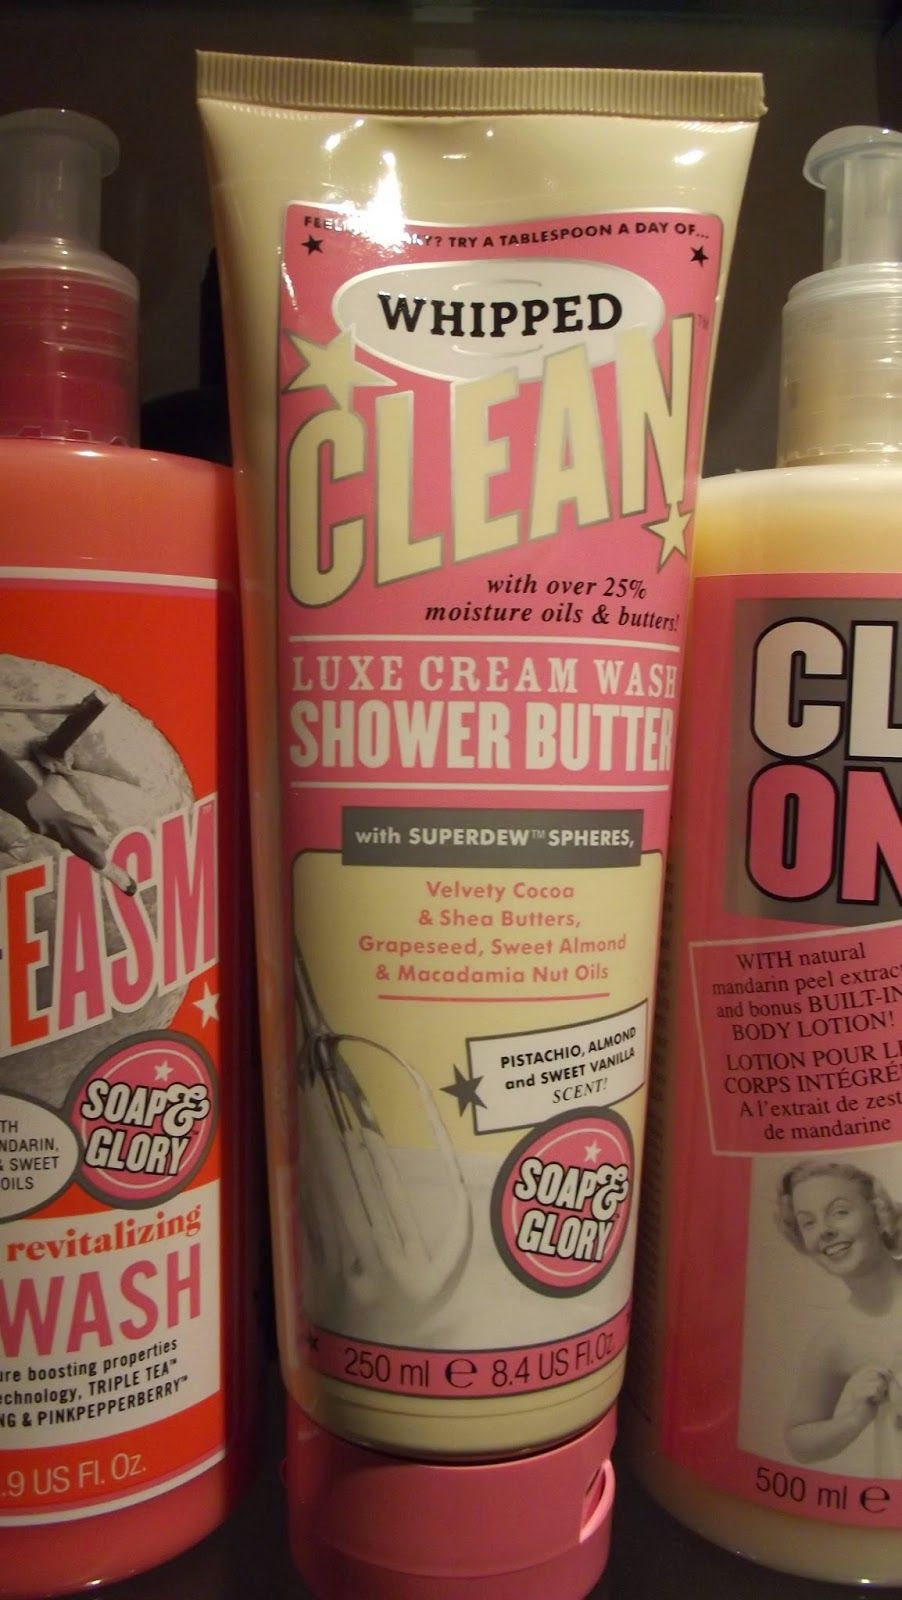 Soap and Glory Whipped Clean Soap and glory, Macadamia